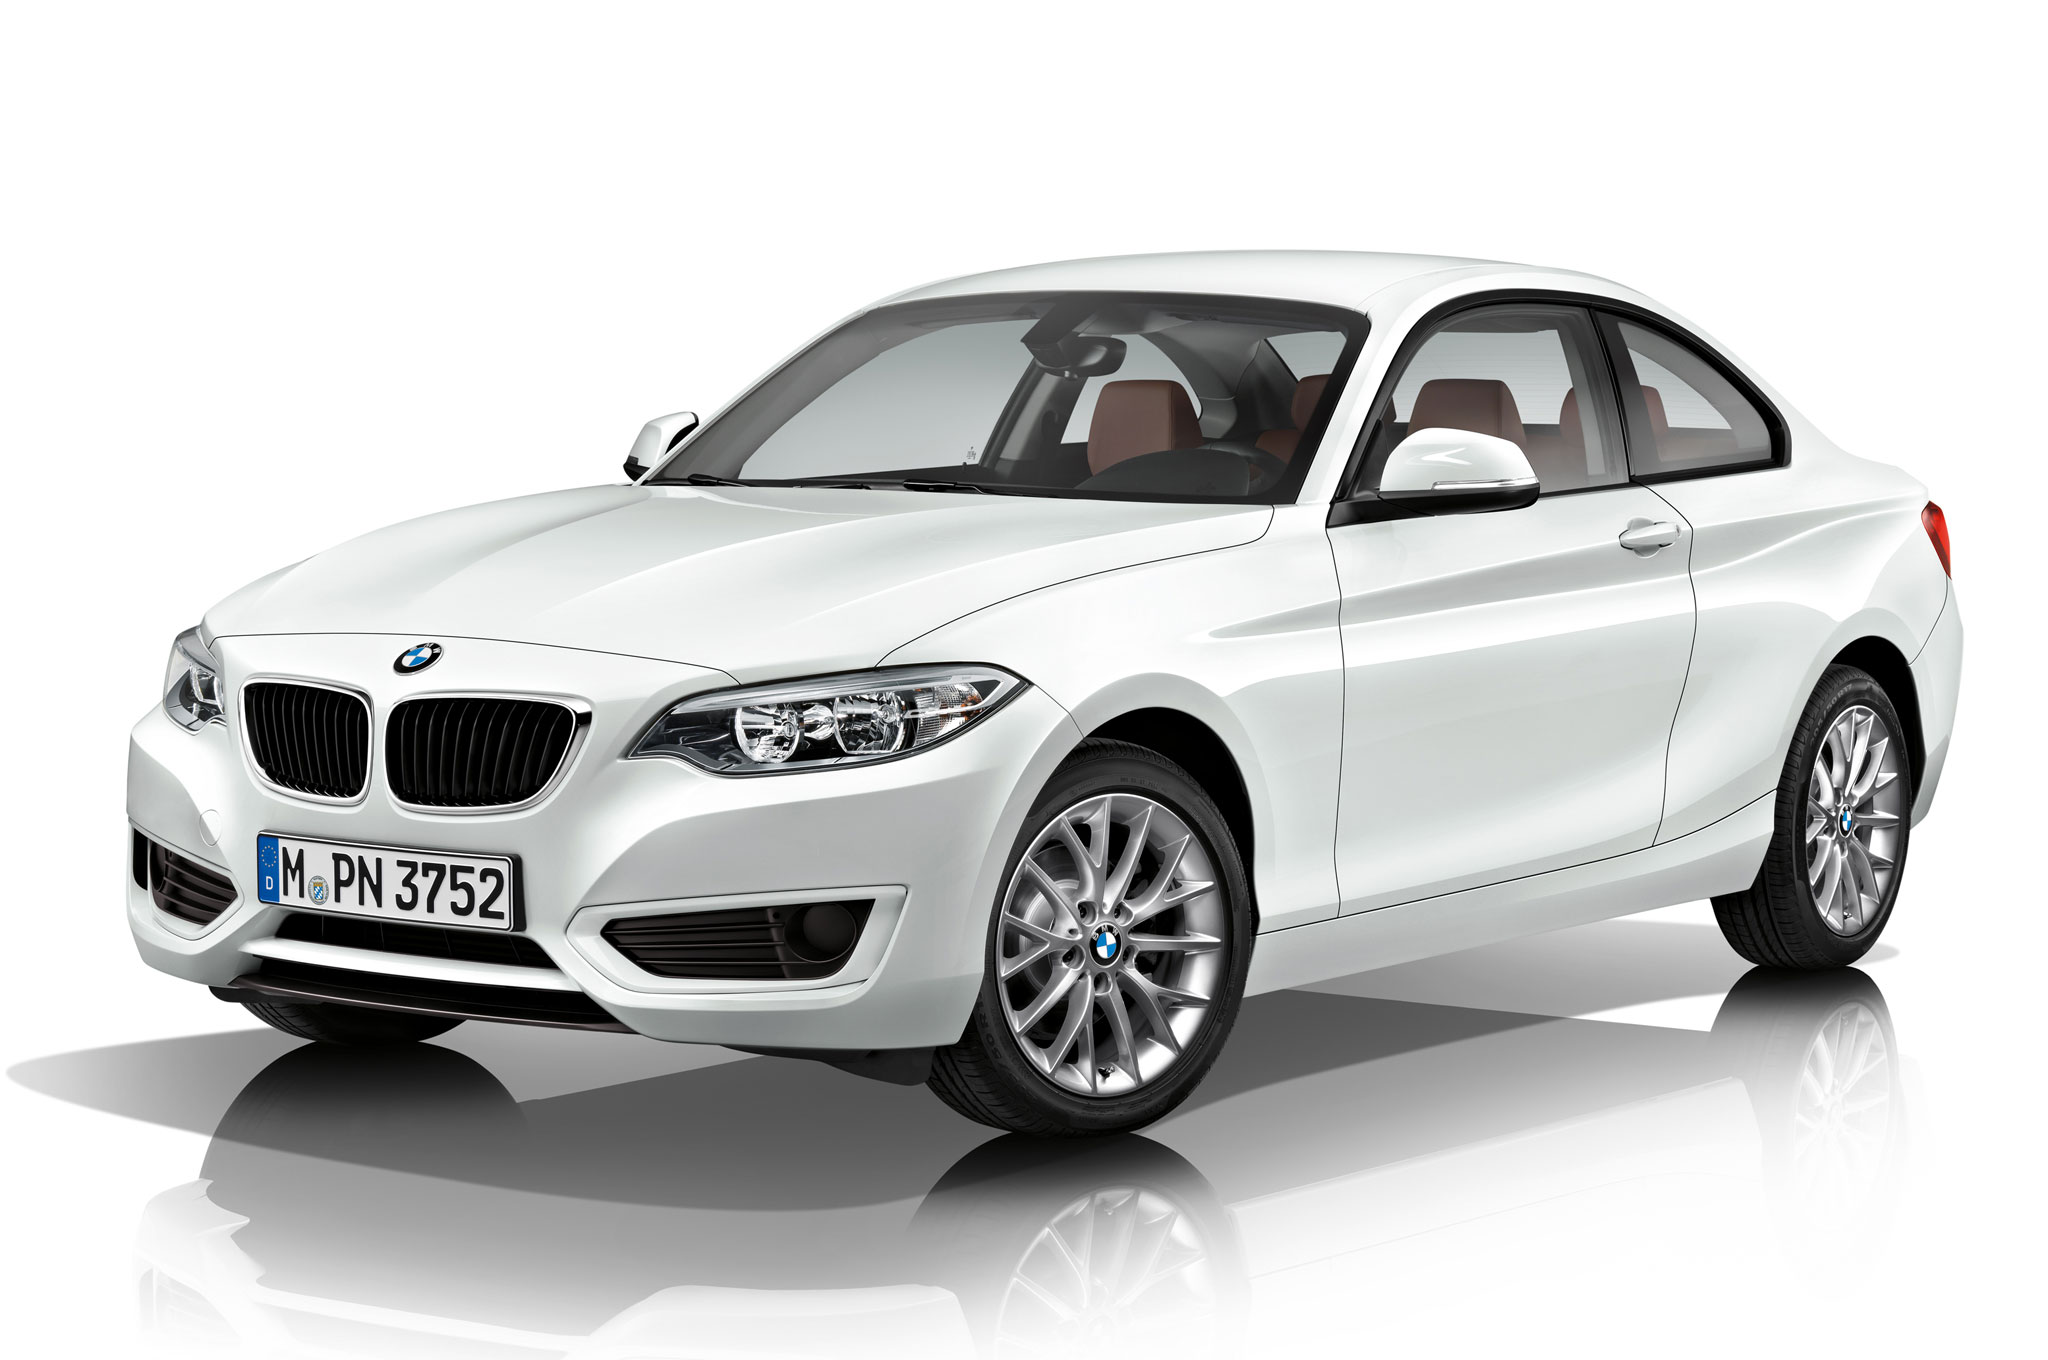 Amazing 2014 BMW 2 Series Coupe Pictures & Backgrounds